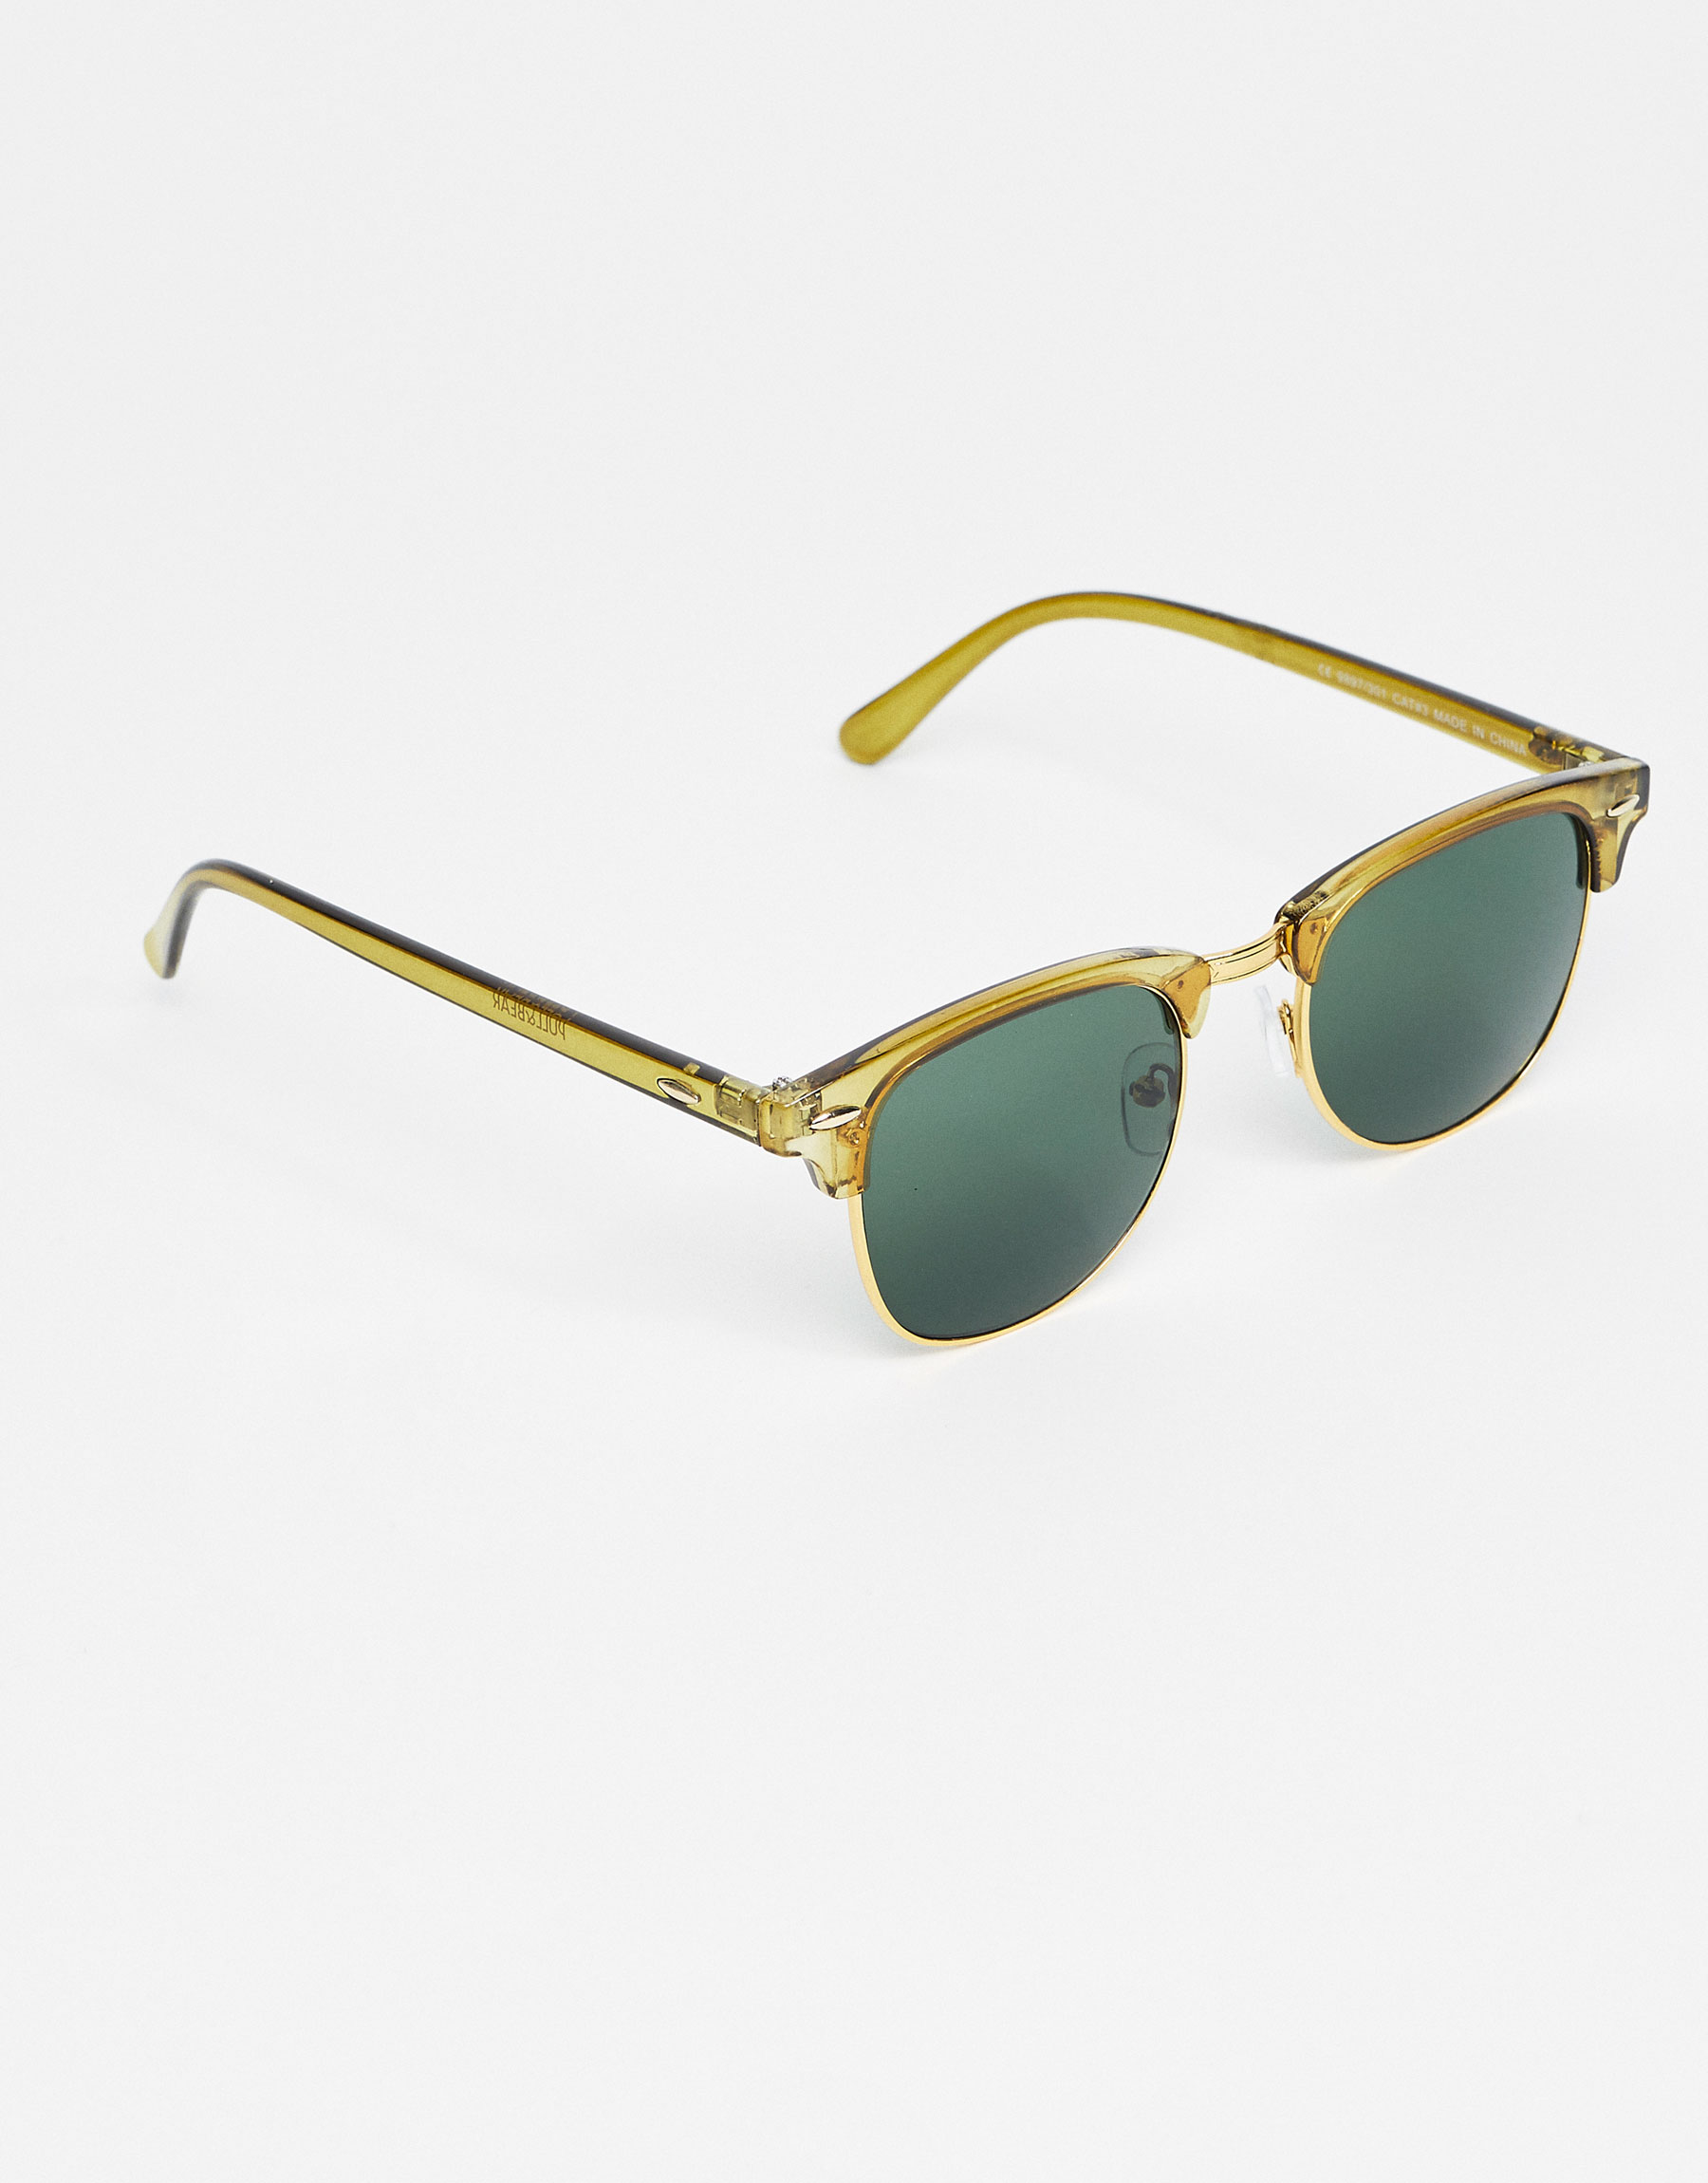 Green retro-style sunglasses